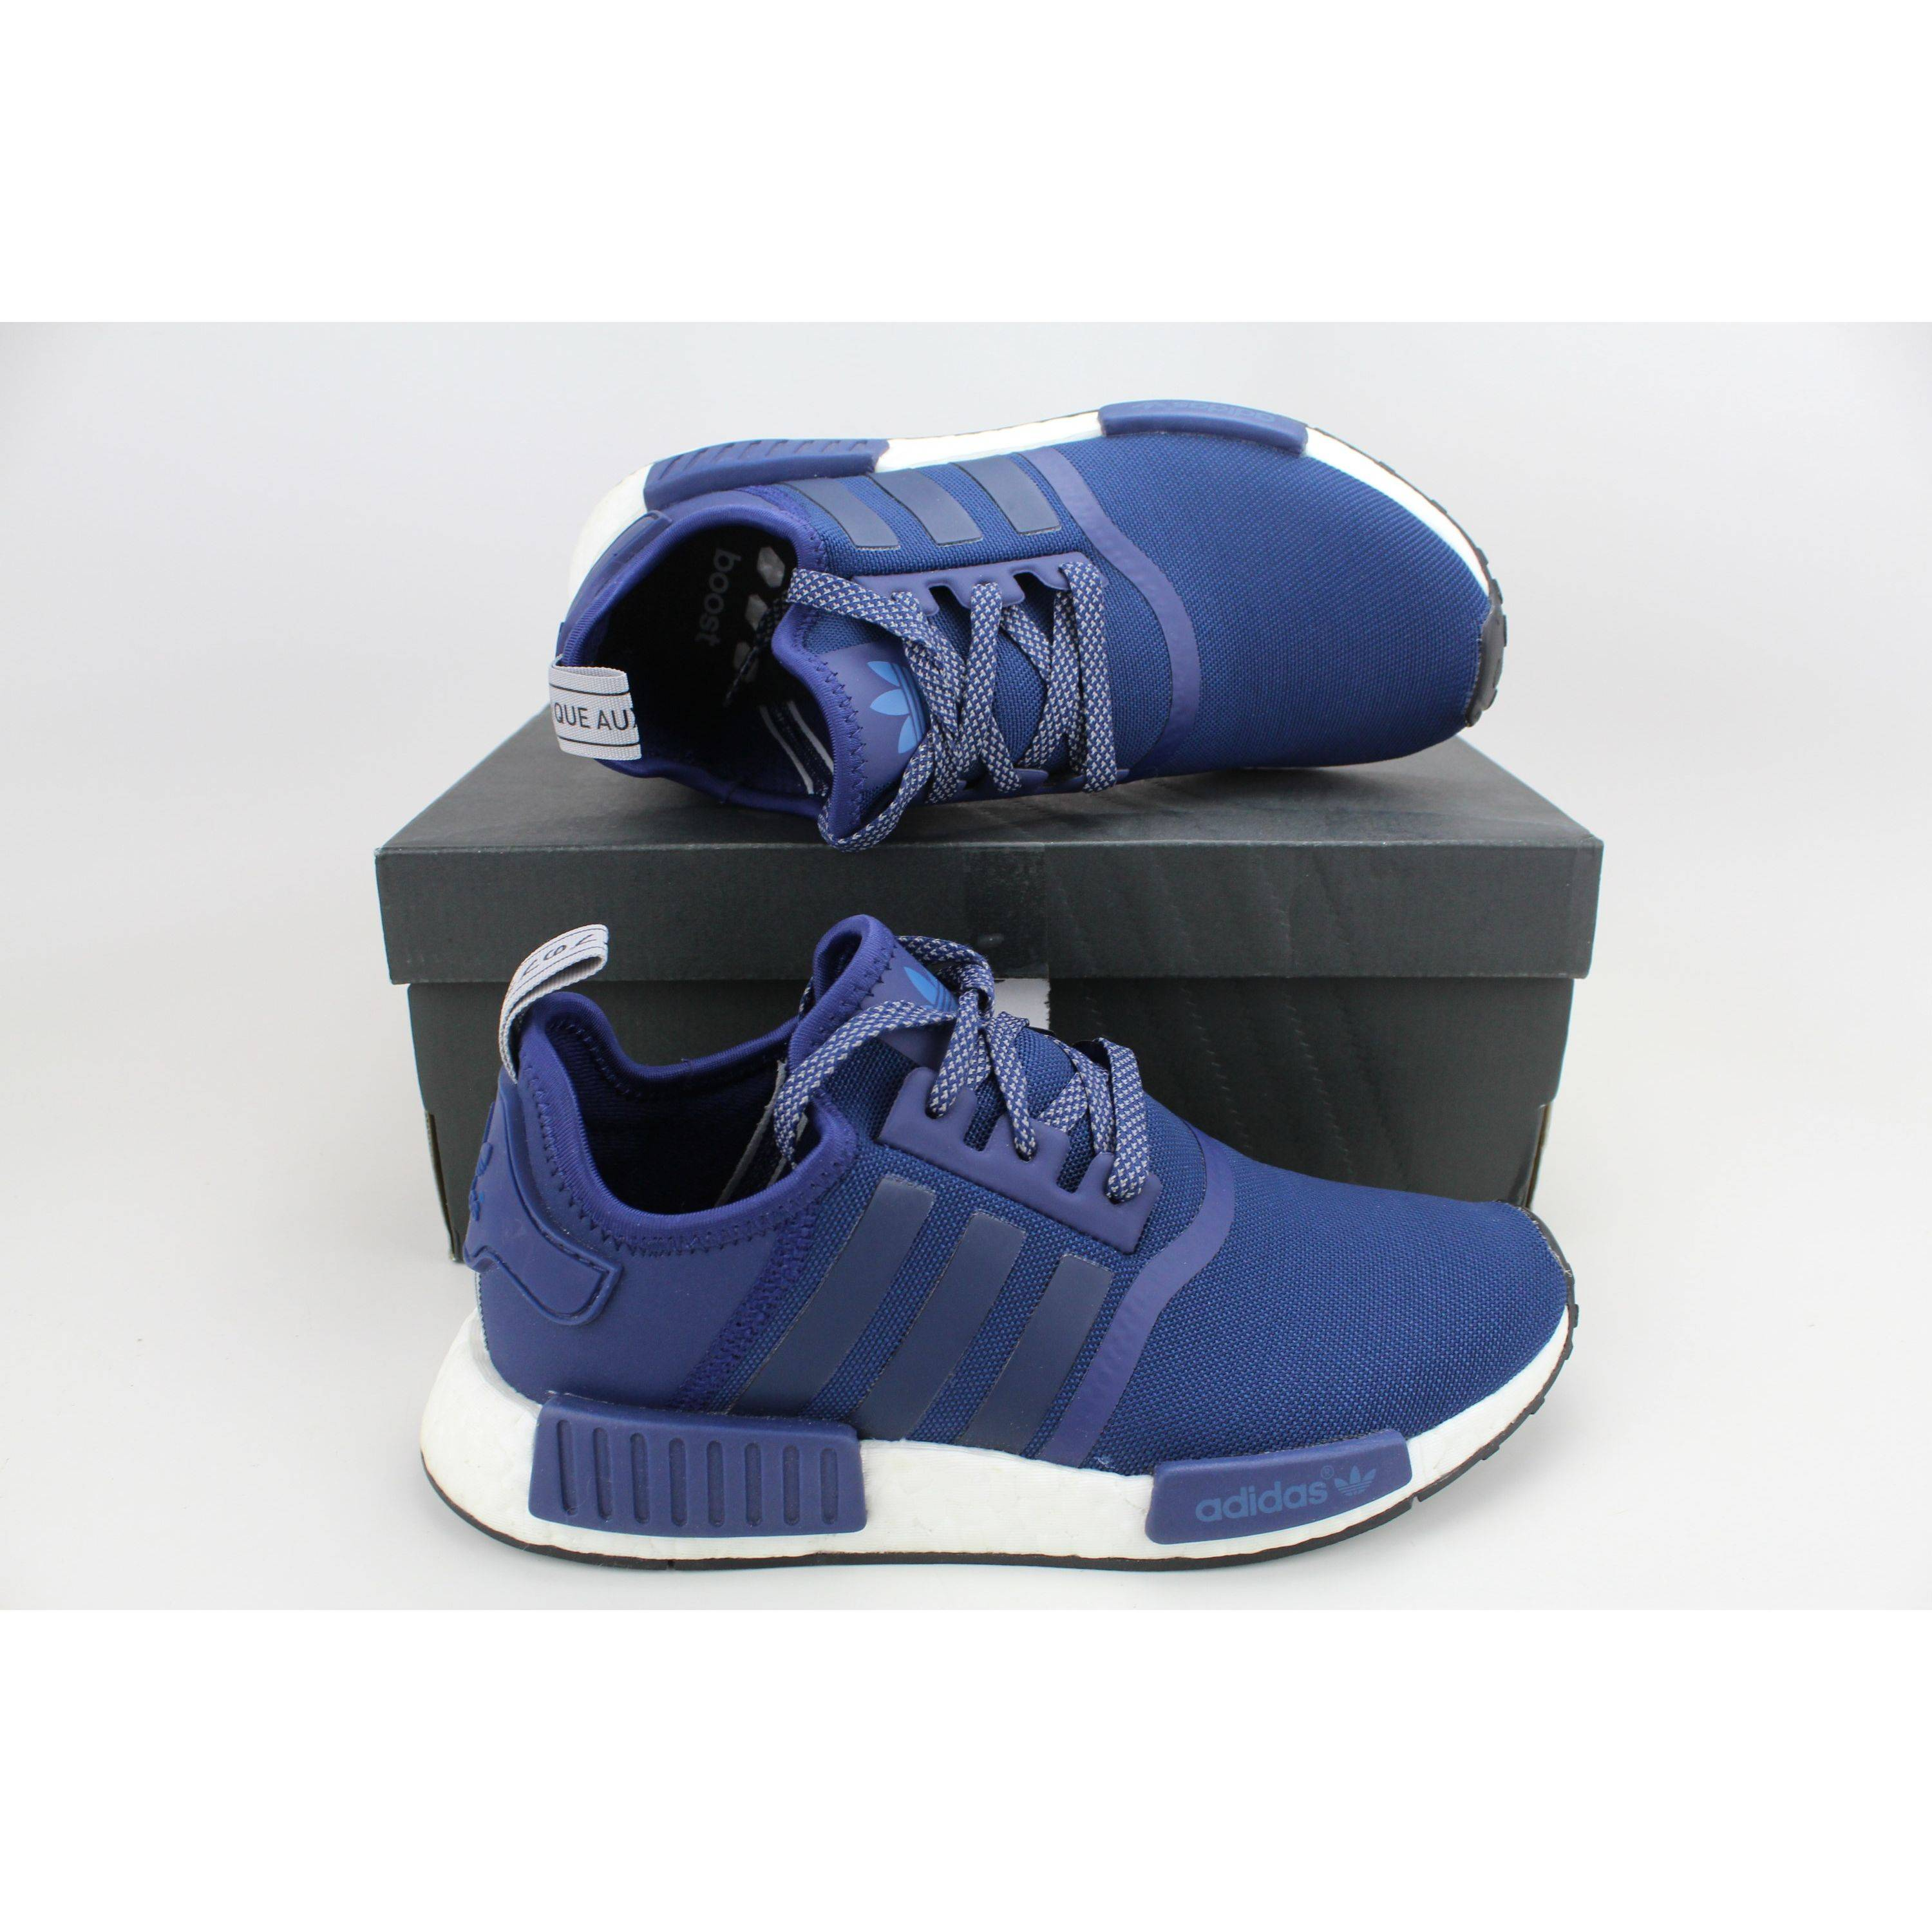 Adidas NMD R1 JD Sports Blue/White BY2505